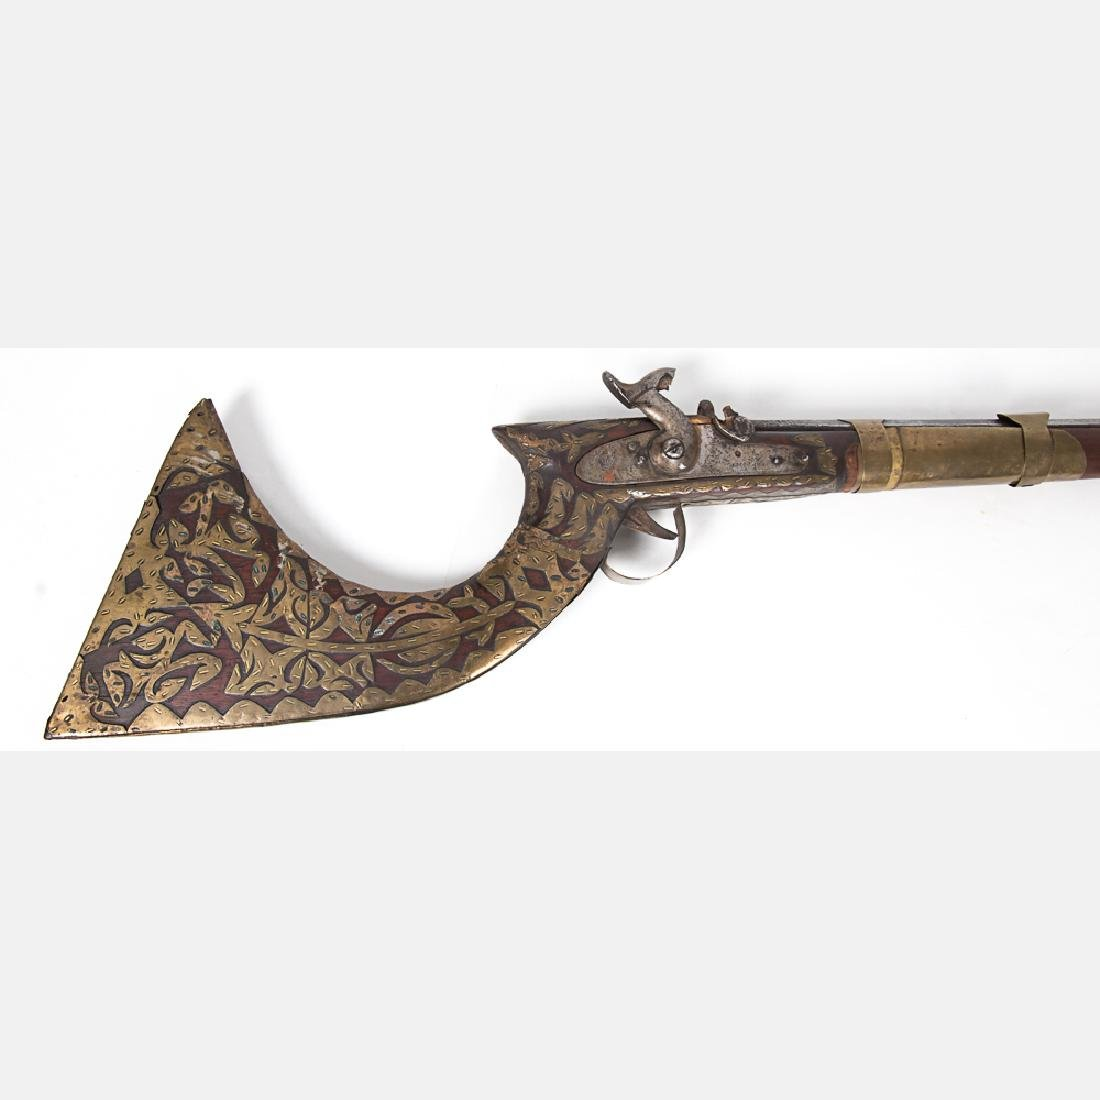 A Middle Eastern Percussion Rifle, 19th Century, - 5